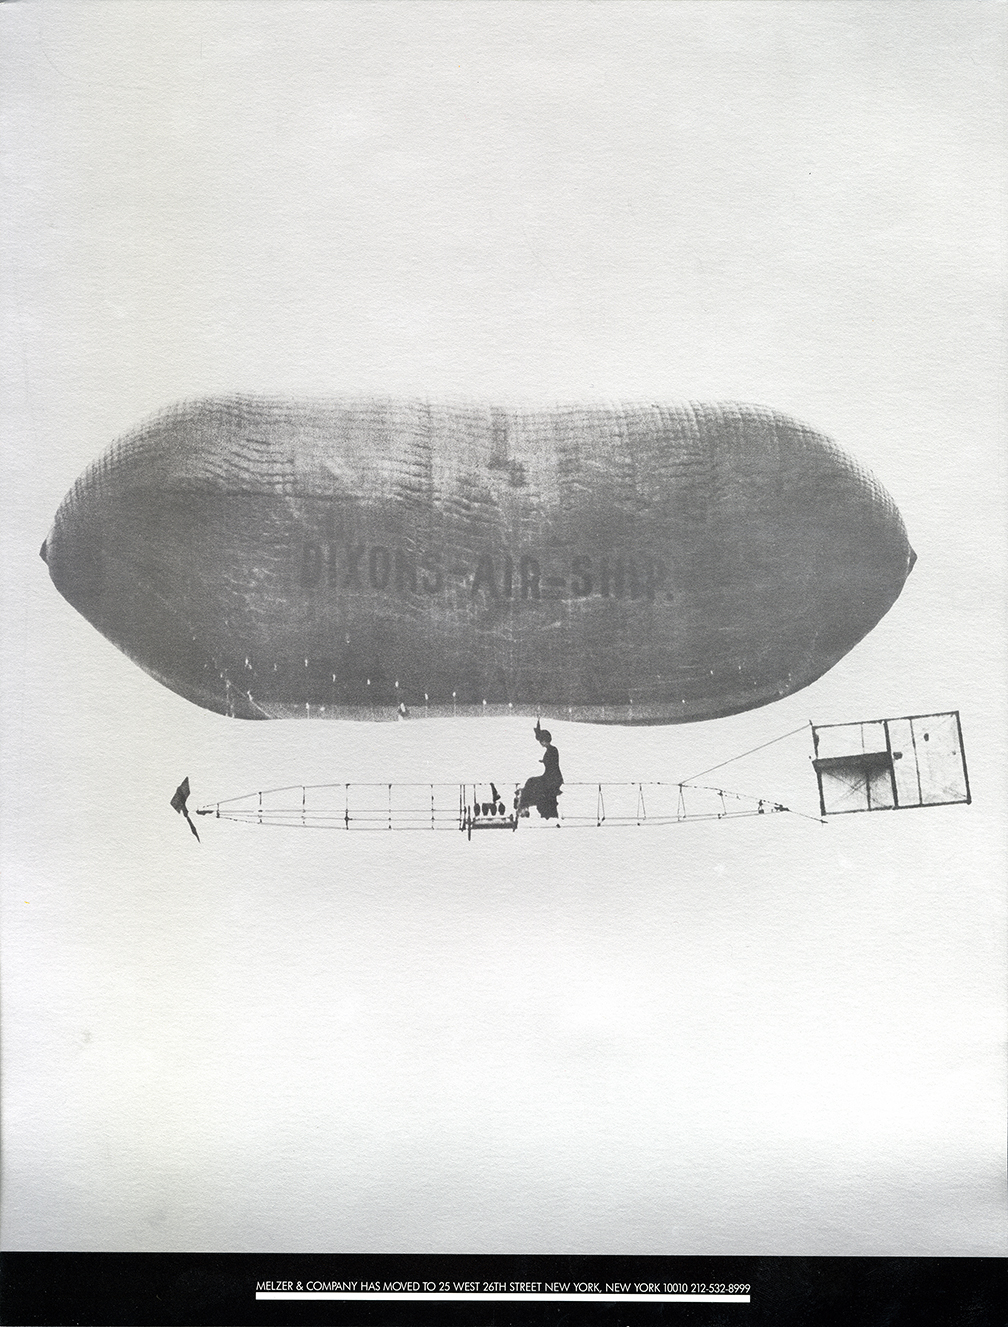 "Poster with a black-and-white photo of a woman flying a small pedal-powered dirigible branded ""Dixons-Air-Ship."" Caption reads, ""Melzer  & Company has moved to 25 West 26th Street New York 10010 212-532-8999."""